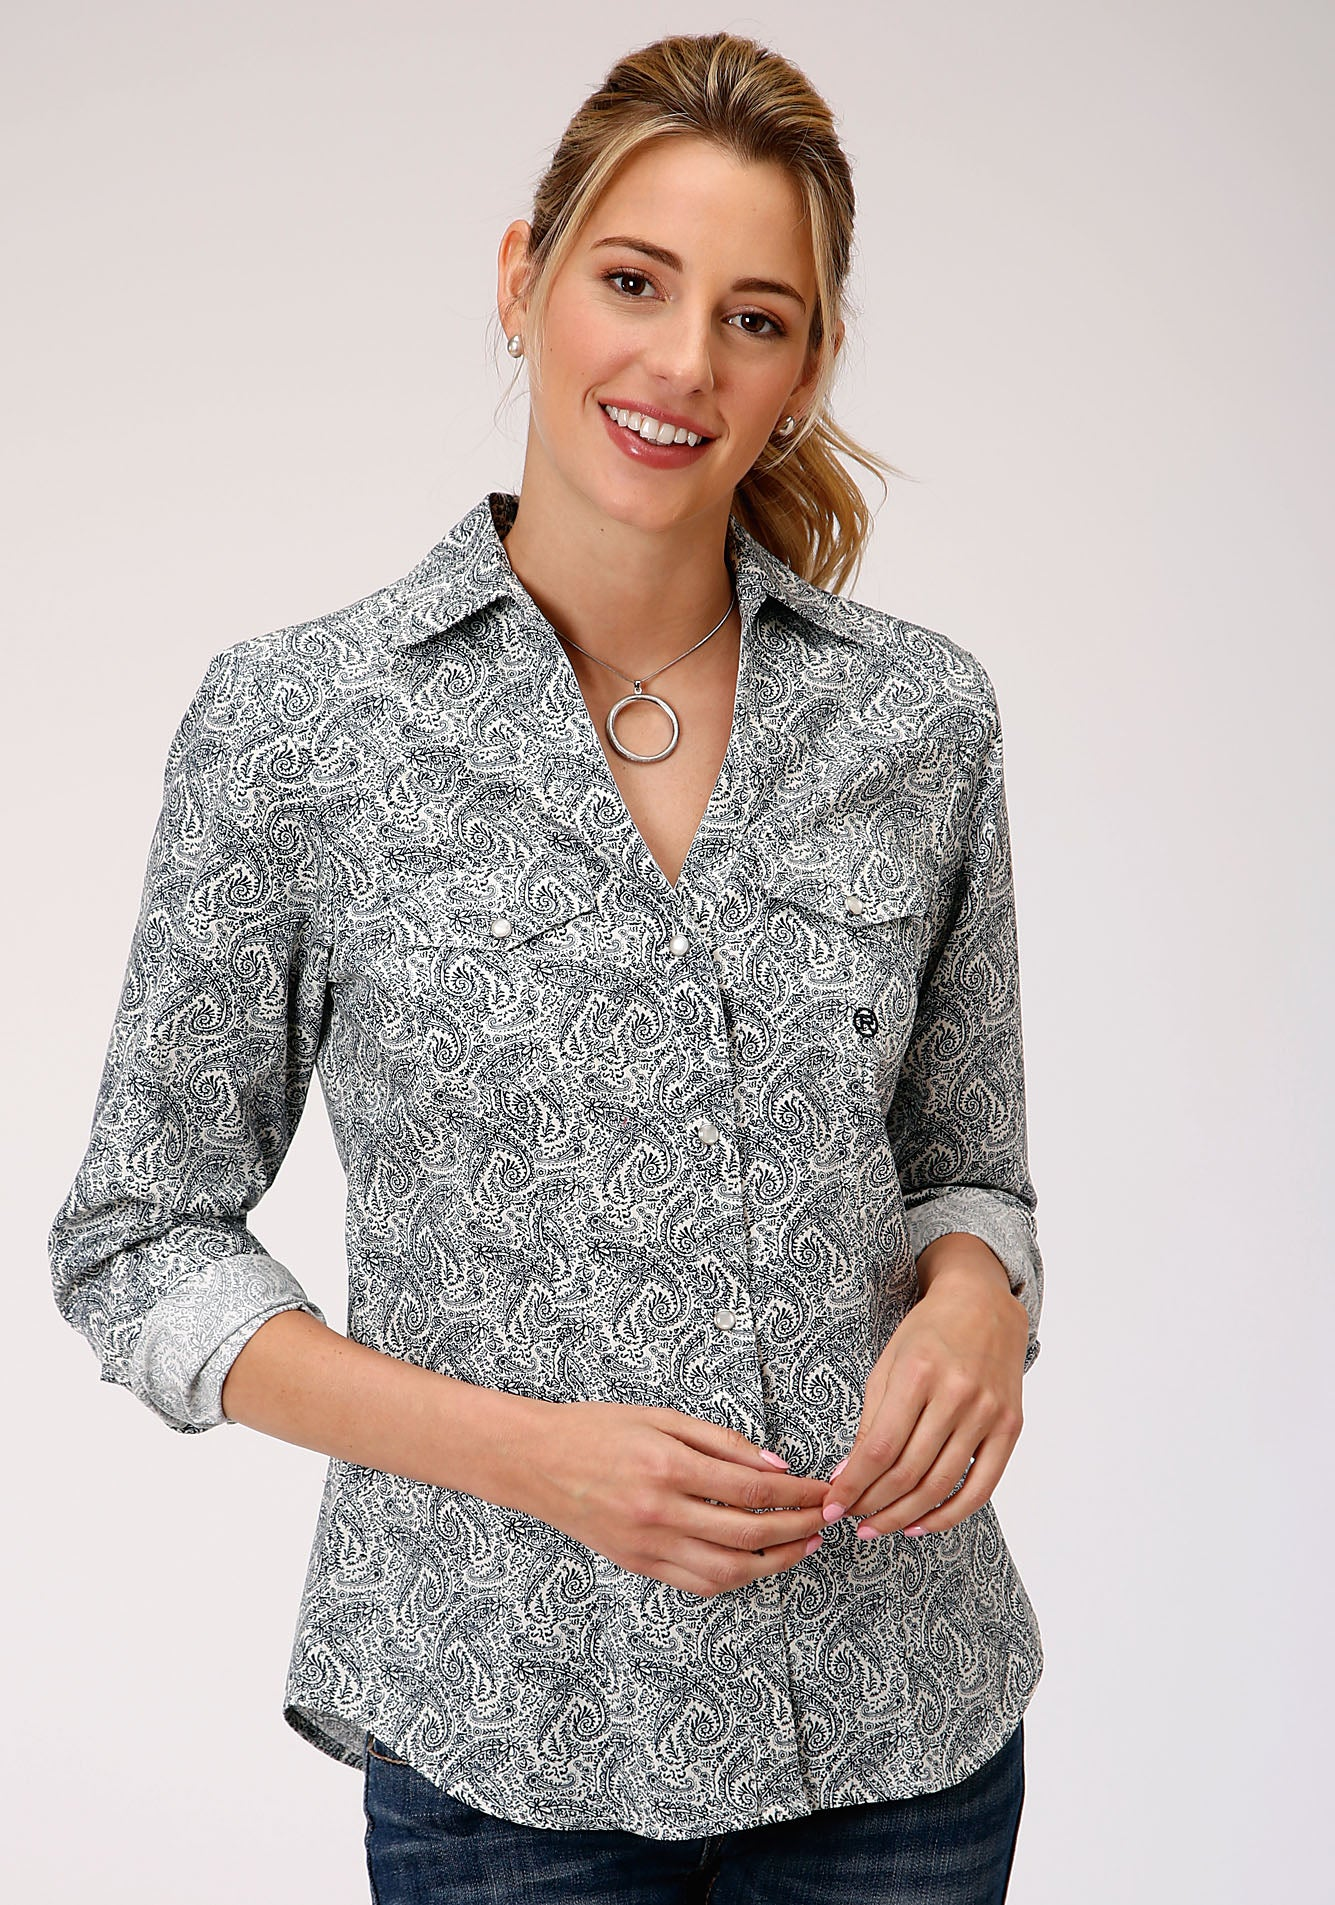 ROPER WOMENS BLUE 00023 GENTLEMAN'S PAISLEY LADIES AMARILLO COLLECTION- HERITAGE LONG SLEEVE